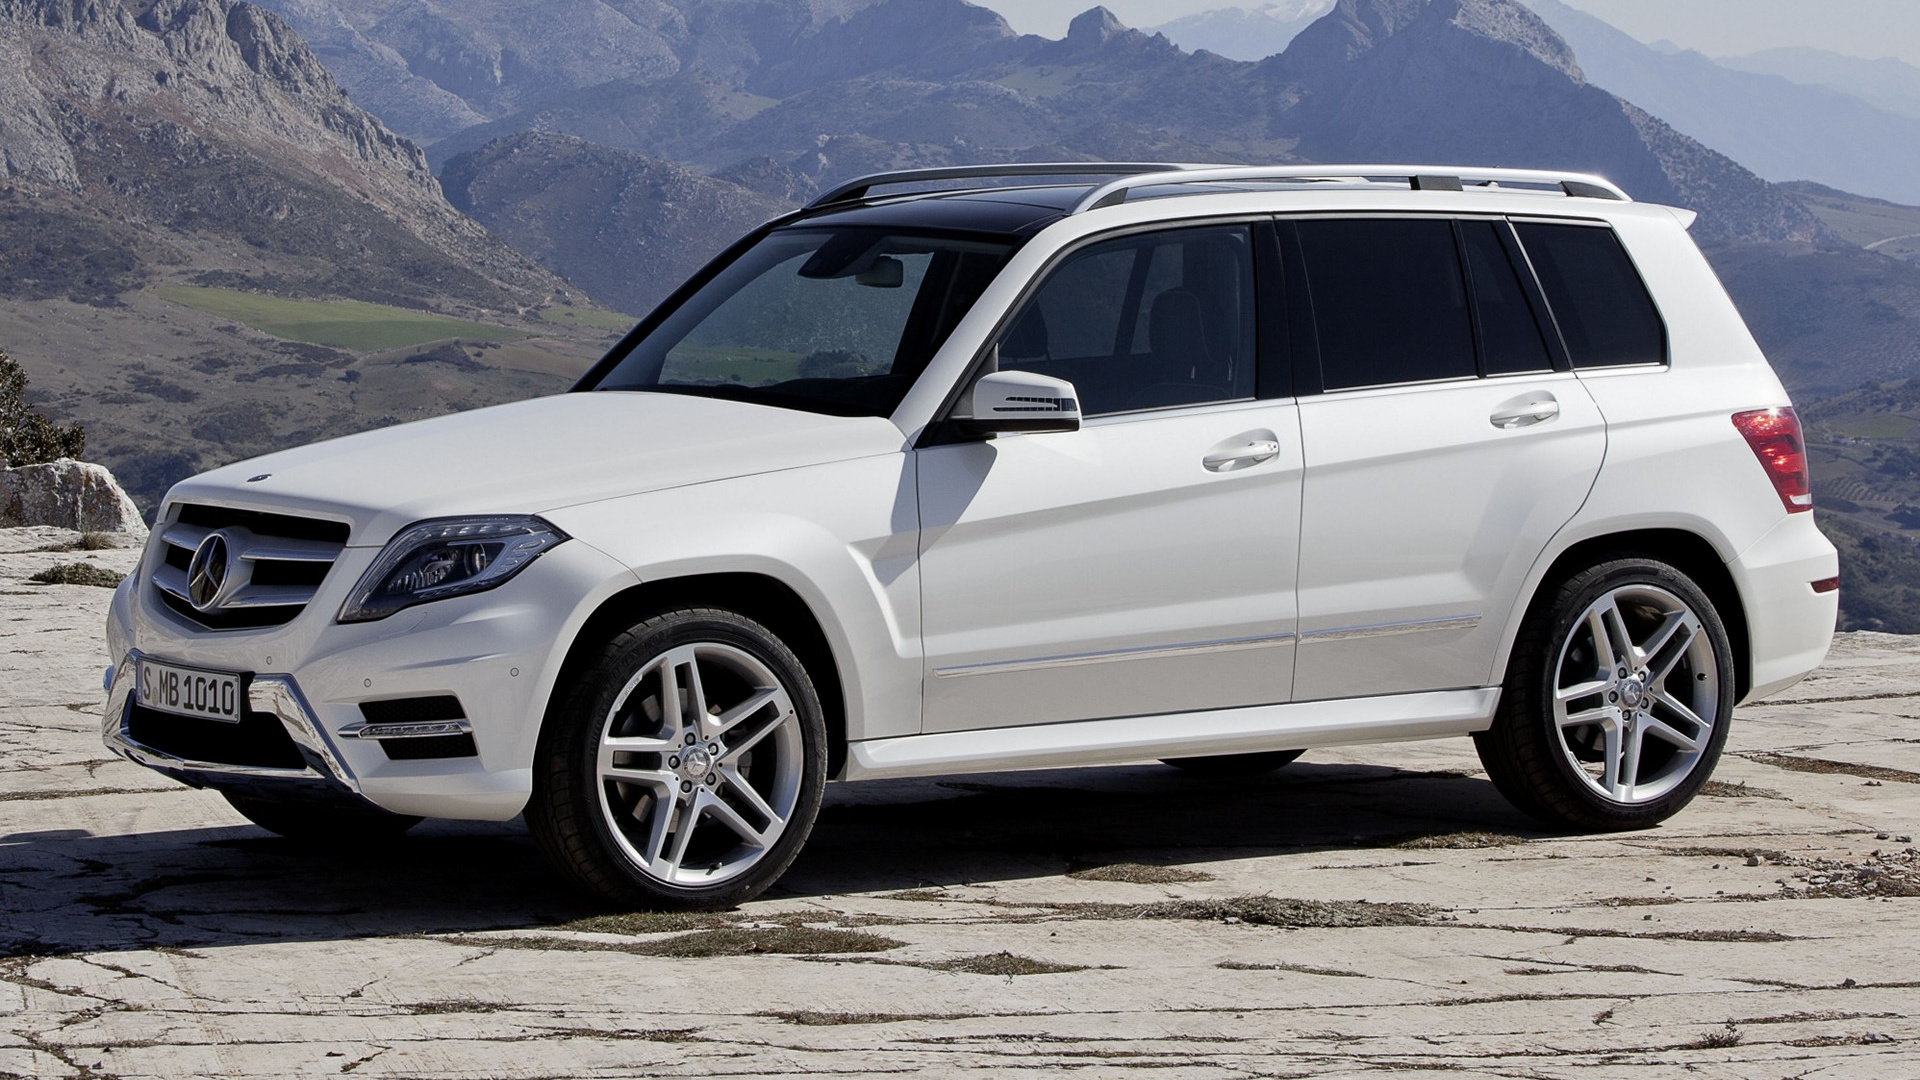 Mercedes-Benz GLK-Class AMG Styling (2012) Wallpapers and HD Images ...